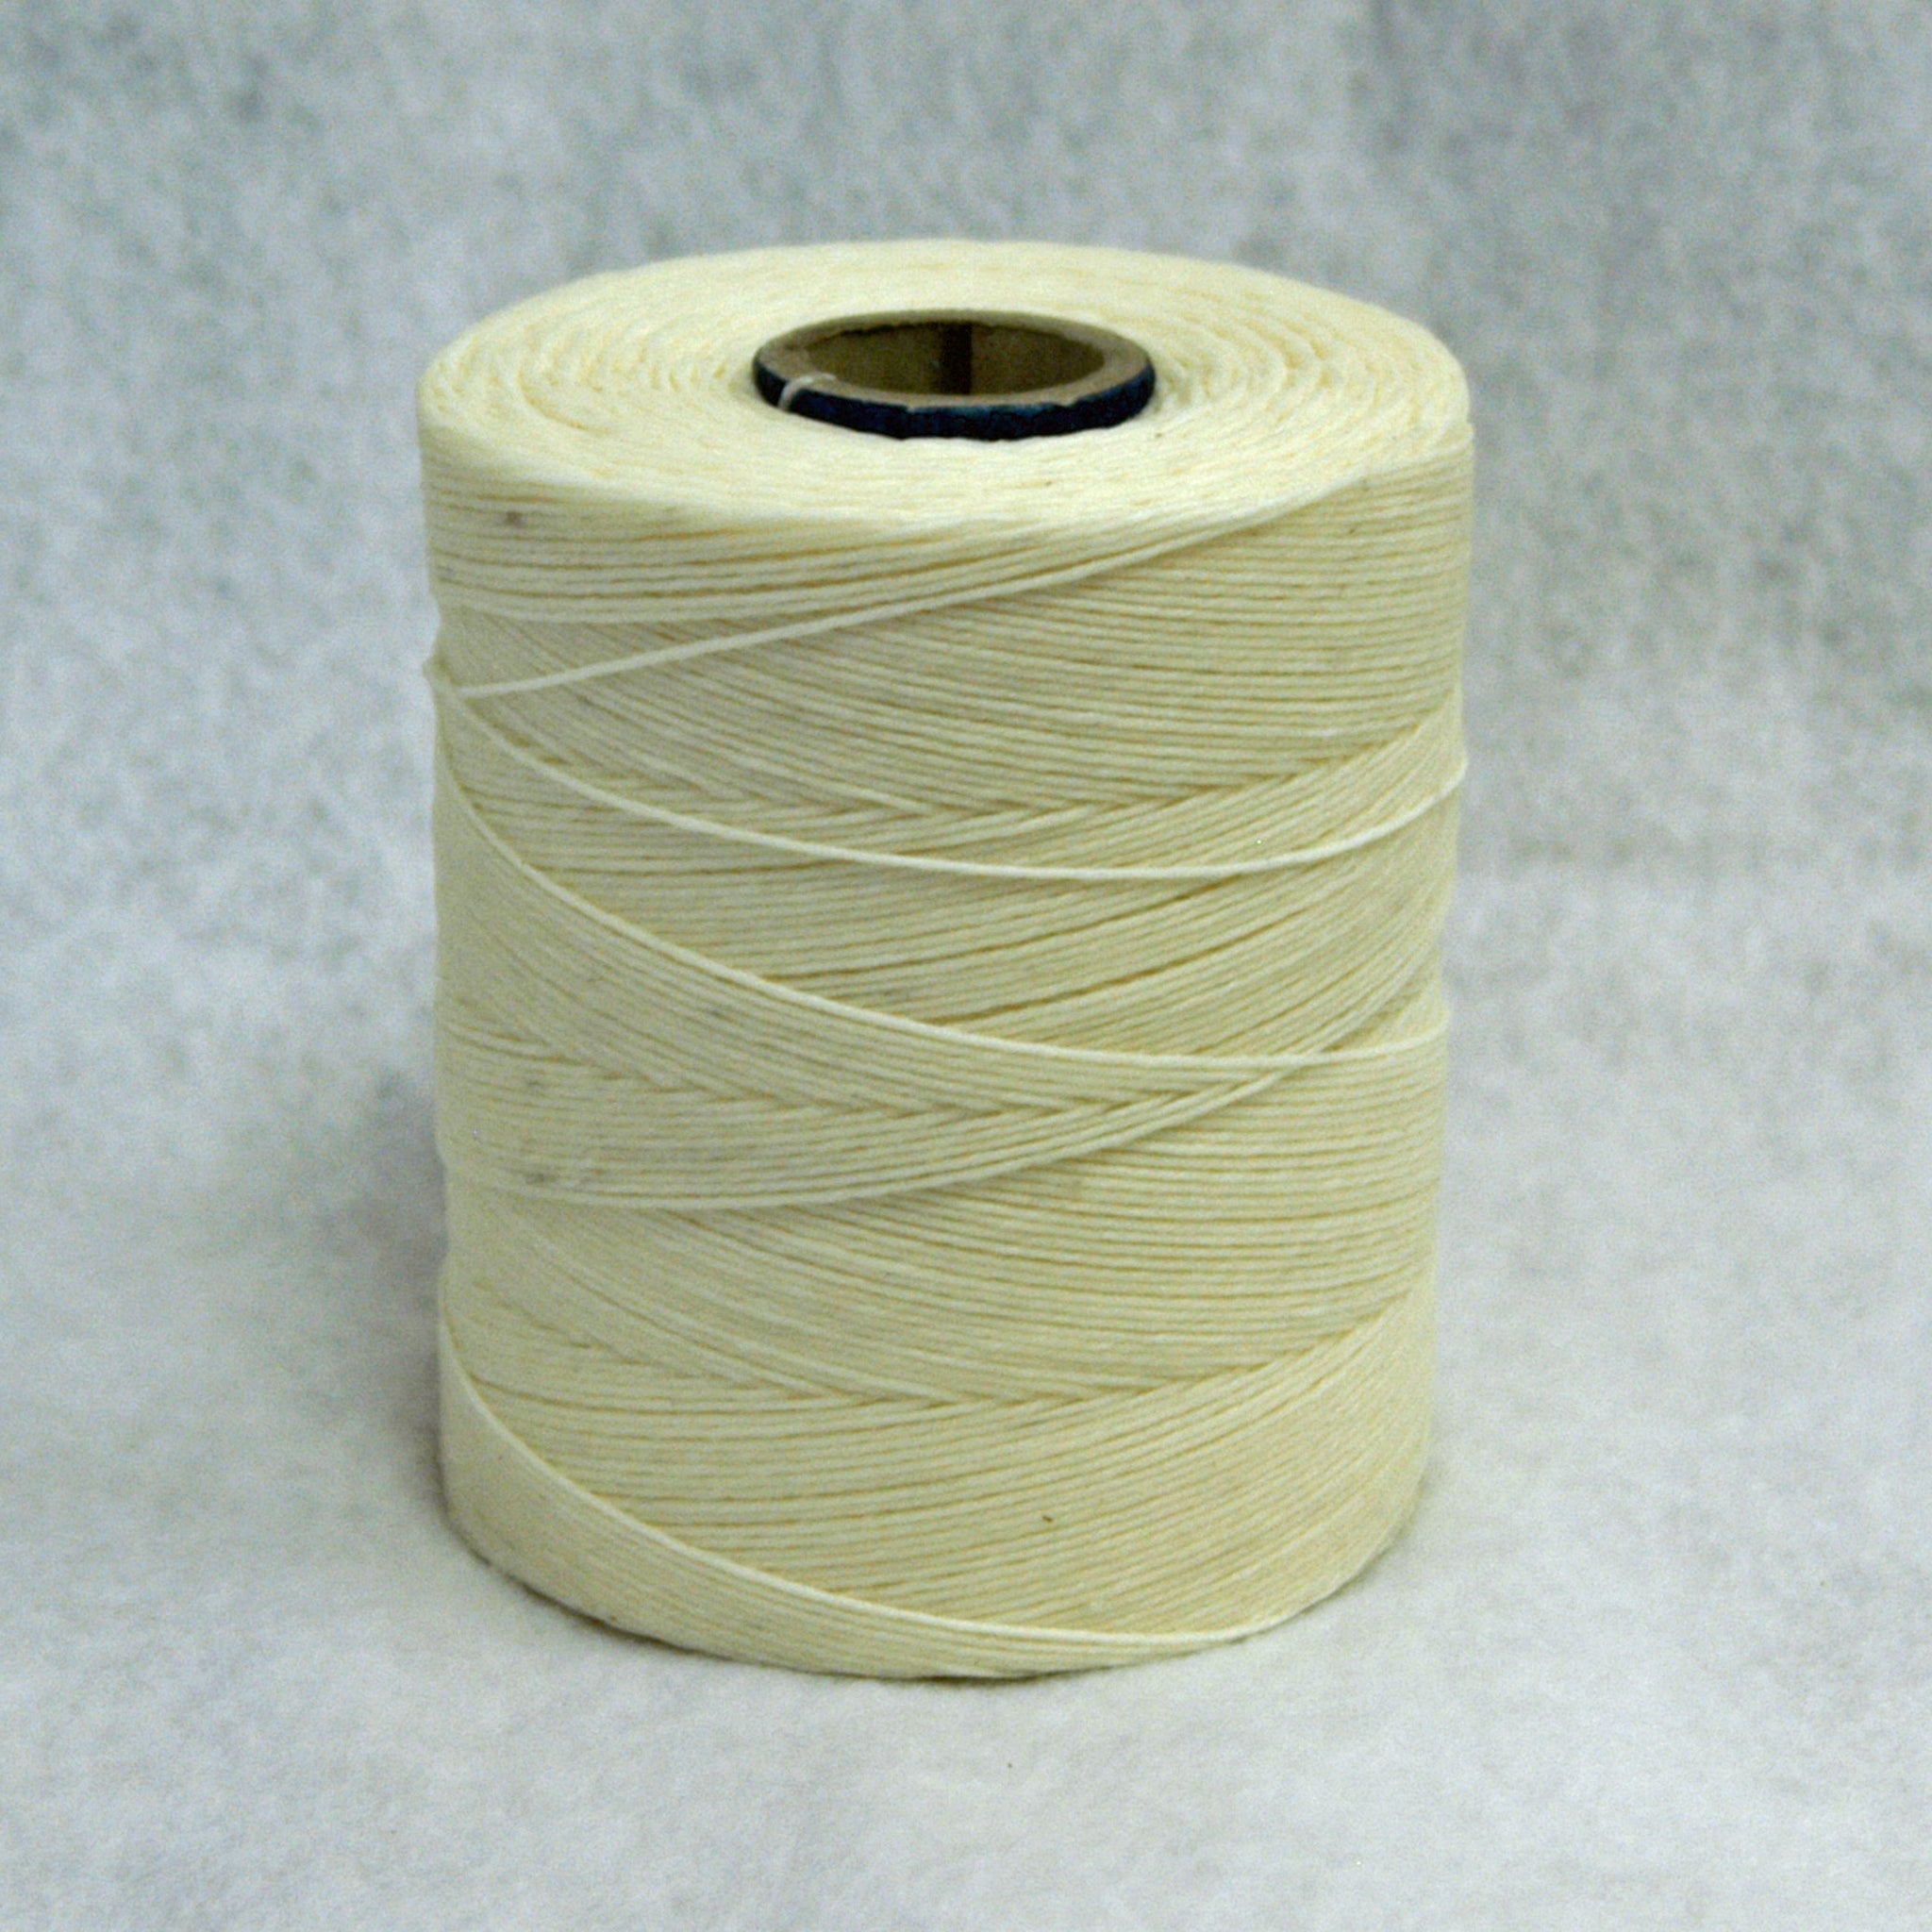 Bee's Wax Coated Linen Twine